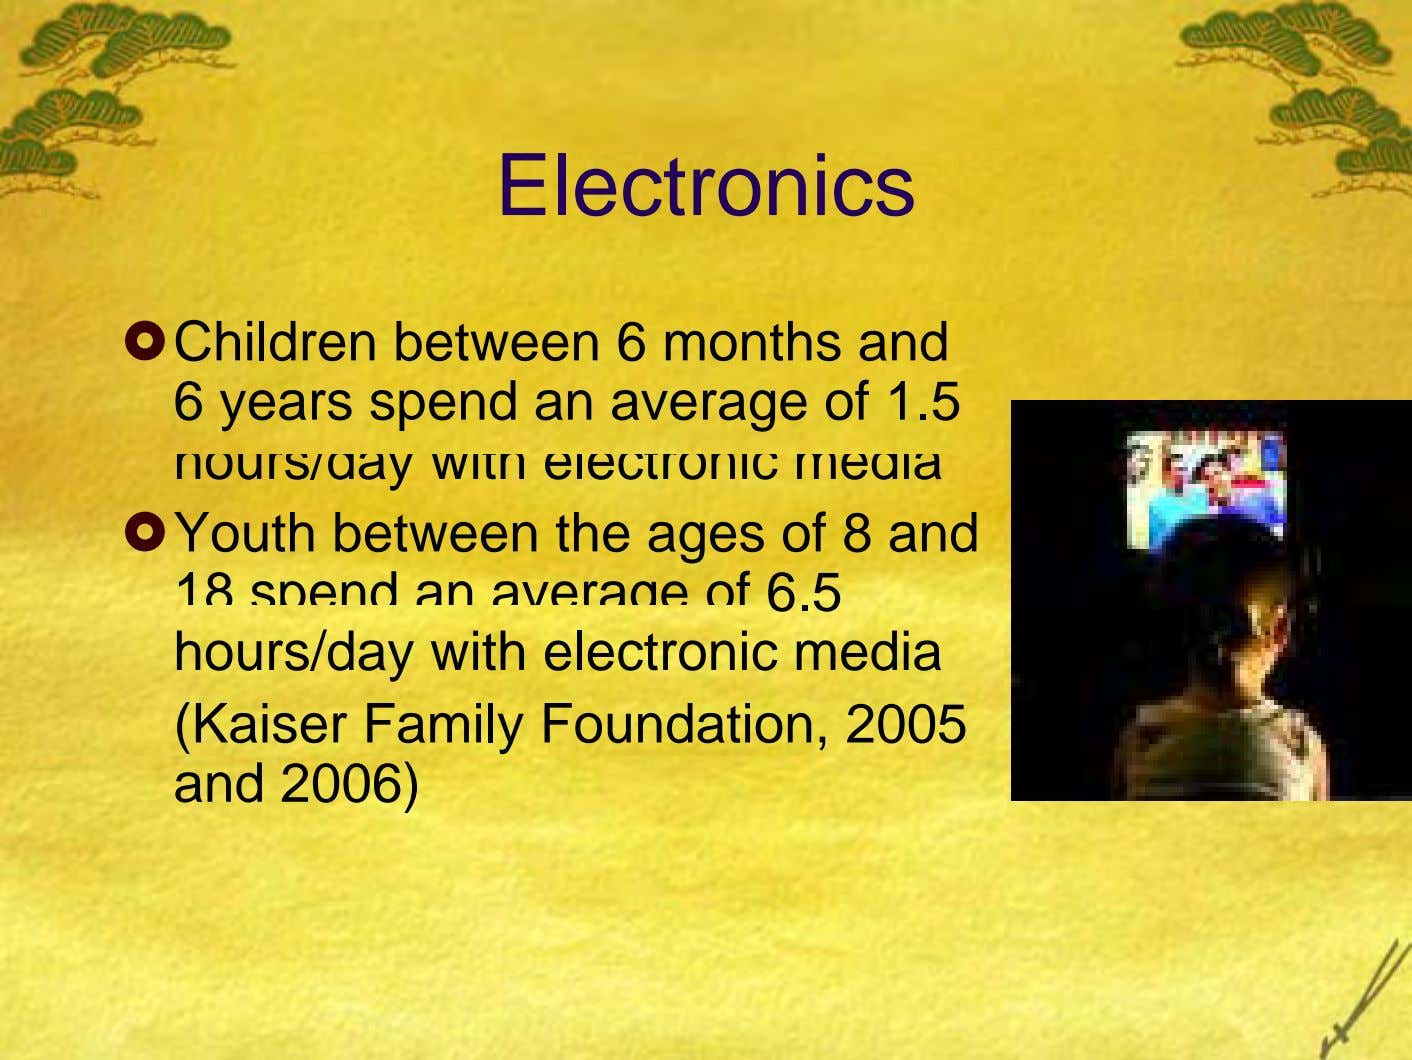 Electronics Children between 6 months and 6 years spend an average of 1.5 hours/day with electronic